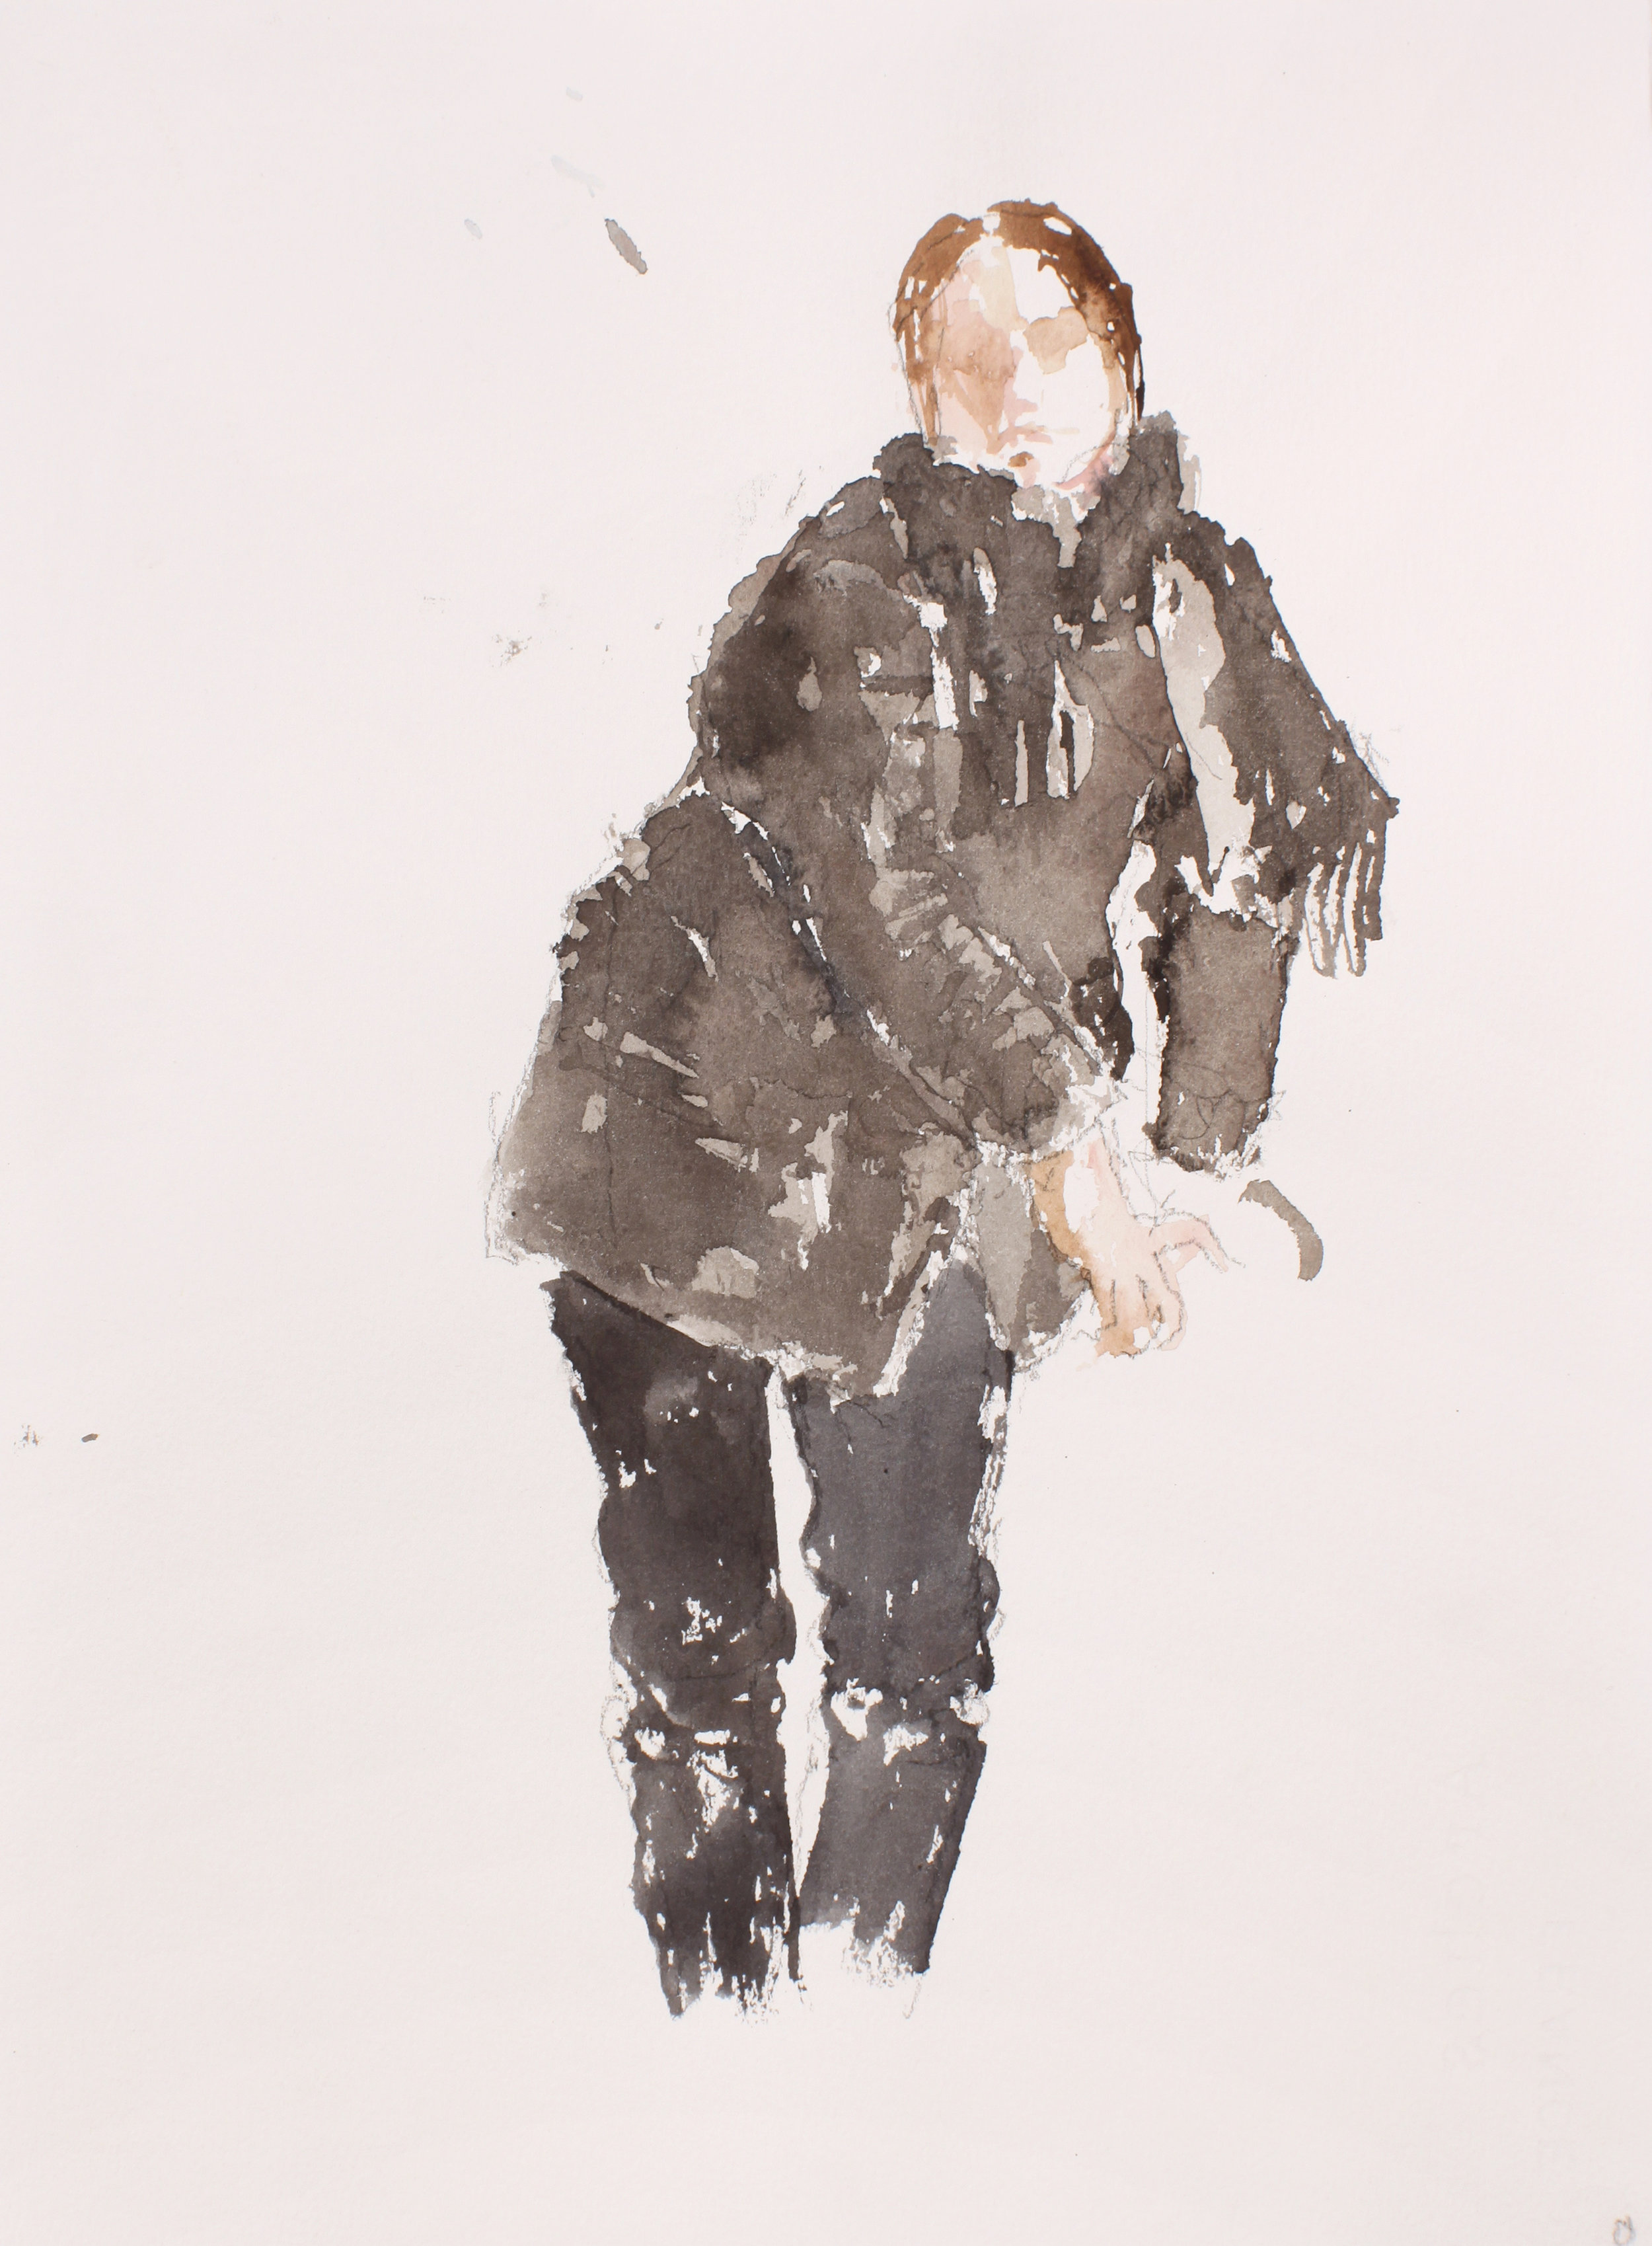 2006_Standing_Female_with_Black_Jacket_and_Scarf_watercolour_and_pencil_on_paper_15x11in_WPF445.jpg